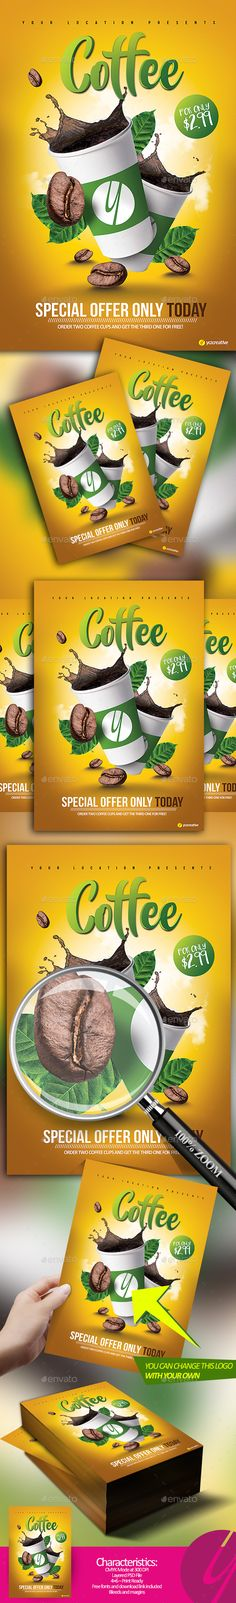 Coffee Special Offer - Restaurant Flyers